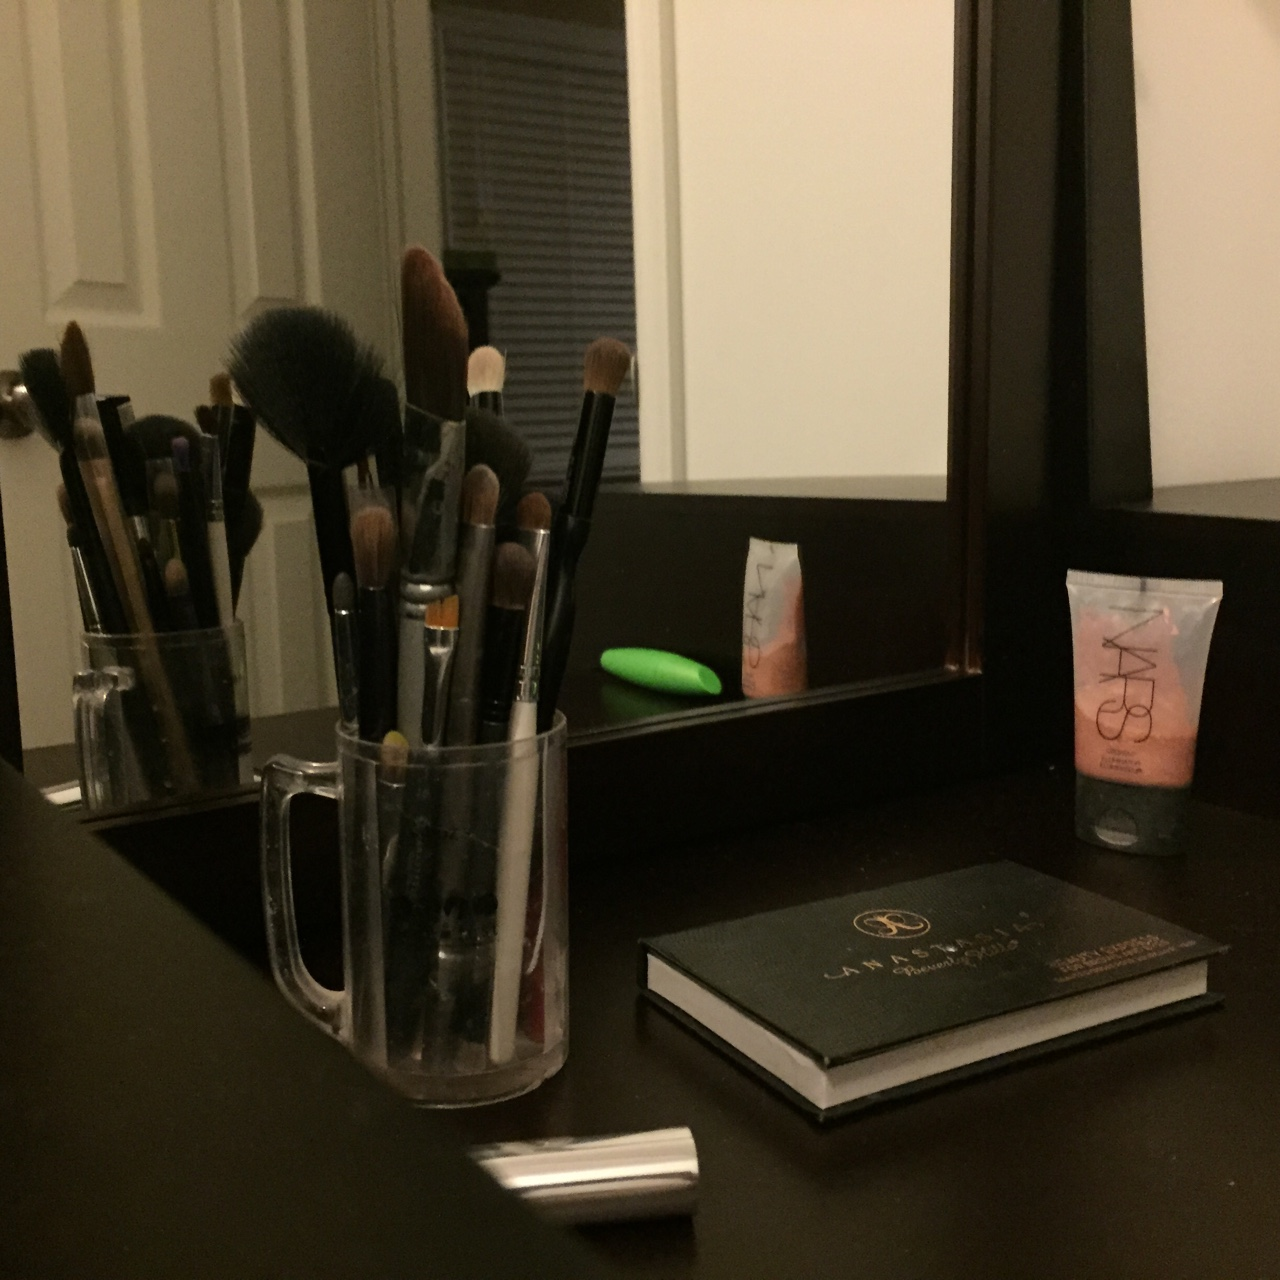 This was Janet's surprise Christmas gift. A makeup vanity. Exhausted after work so not much to add to this blog tonight. The light at the end of the tunnel is near.     -MB